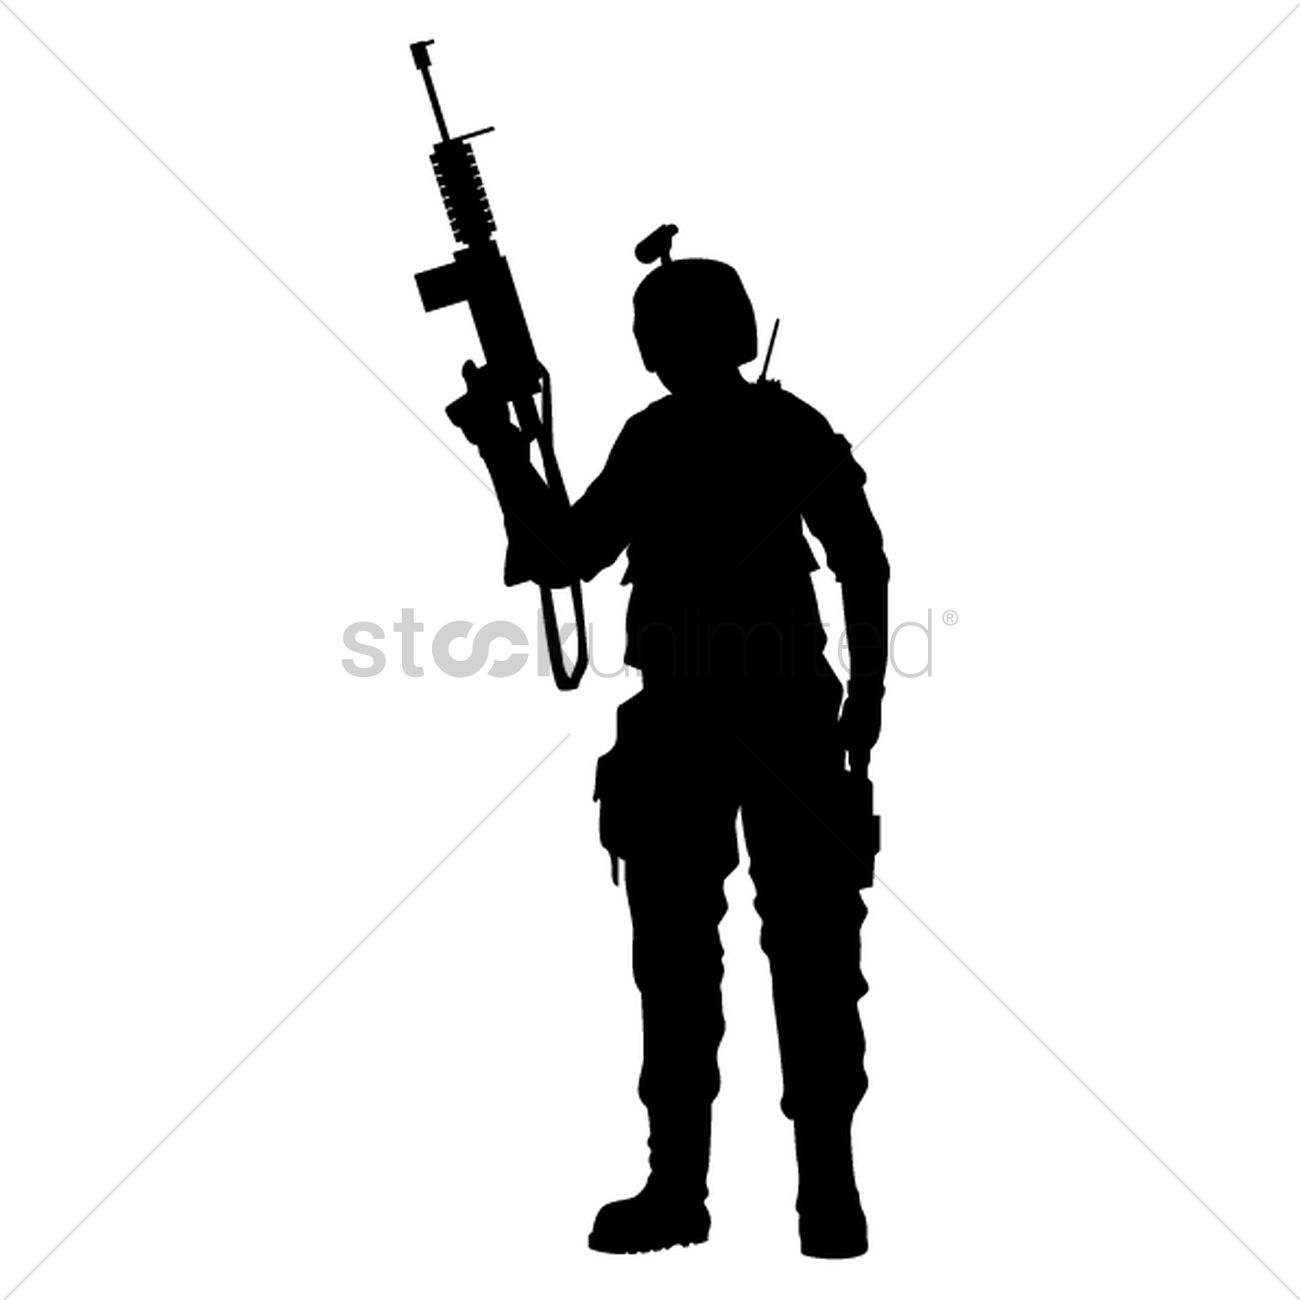 Silhouette of army man holding gun Vector Image - 1501252 ...